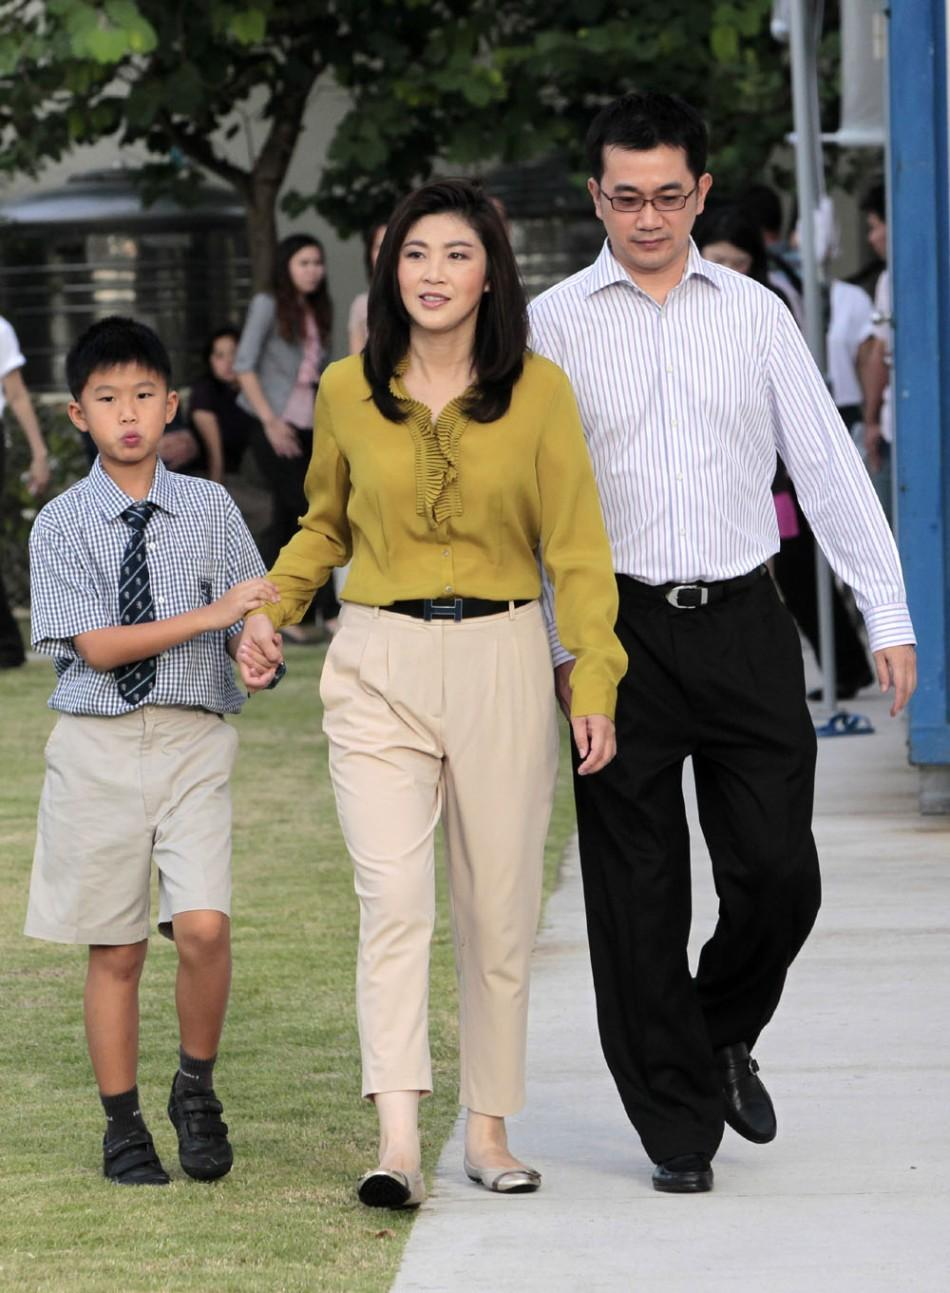 Yingluck Shinawatra walks with husband and son